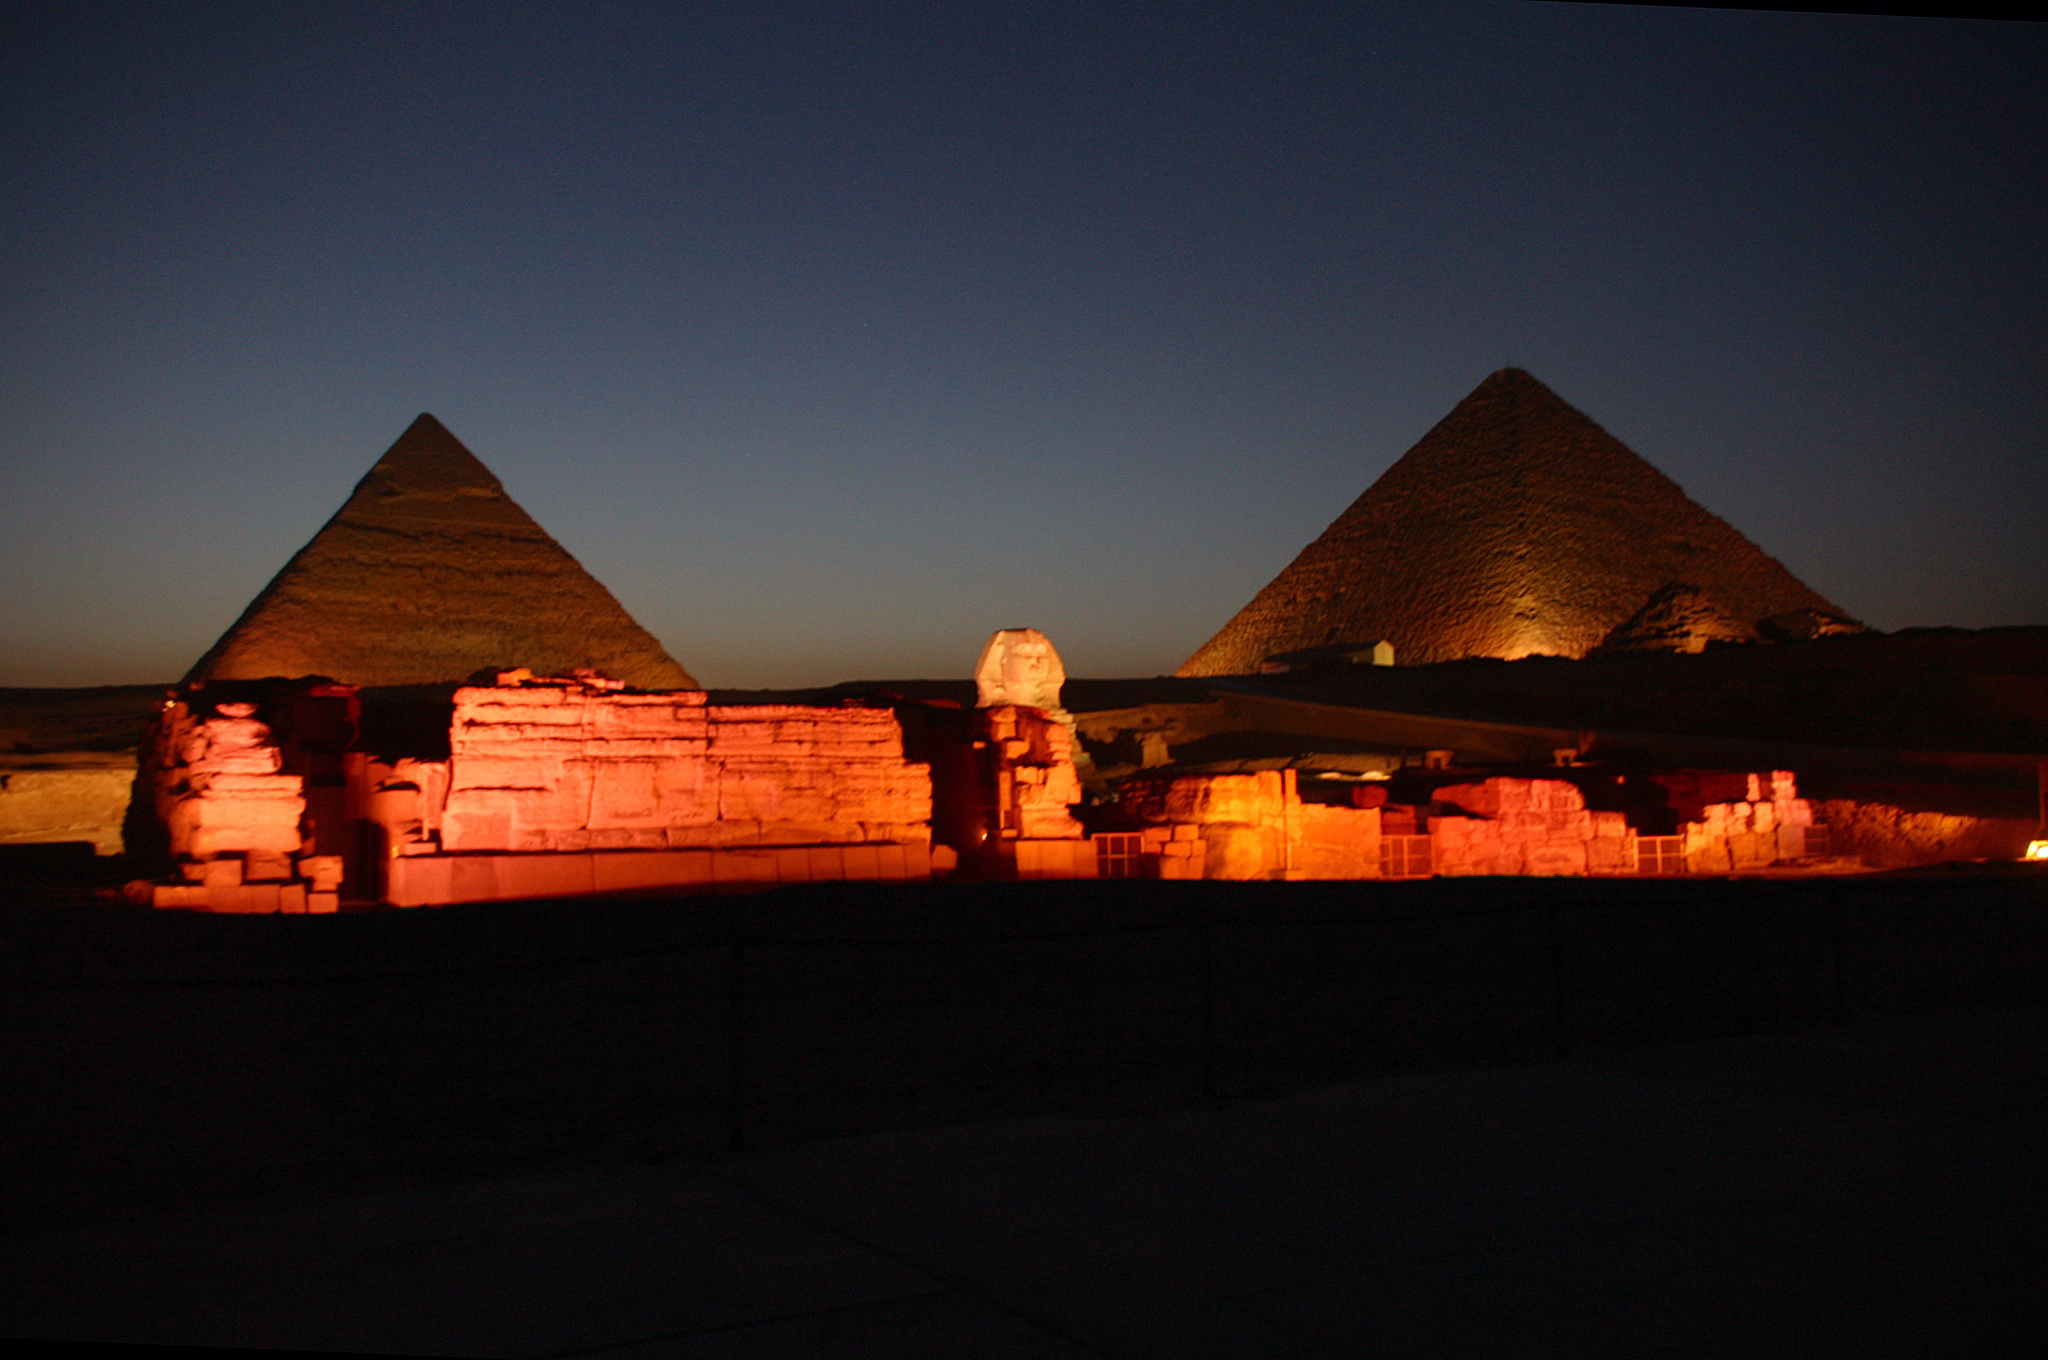 PyramidsofGiza at night